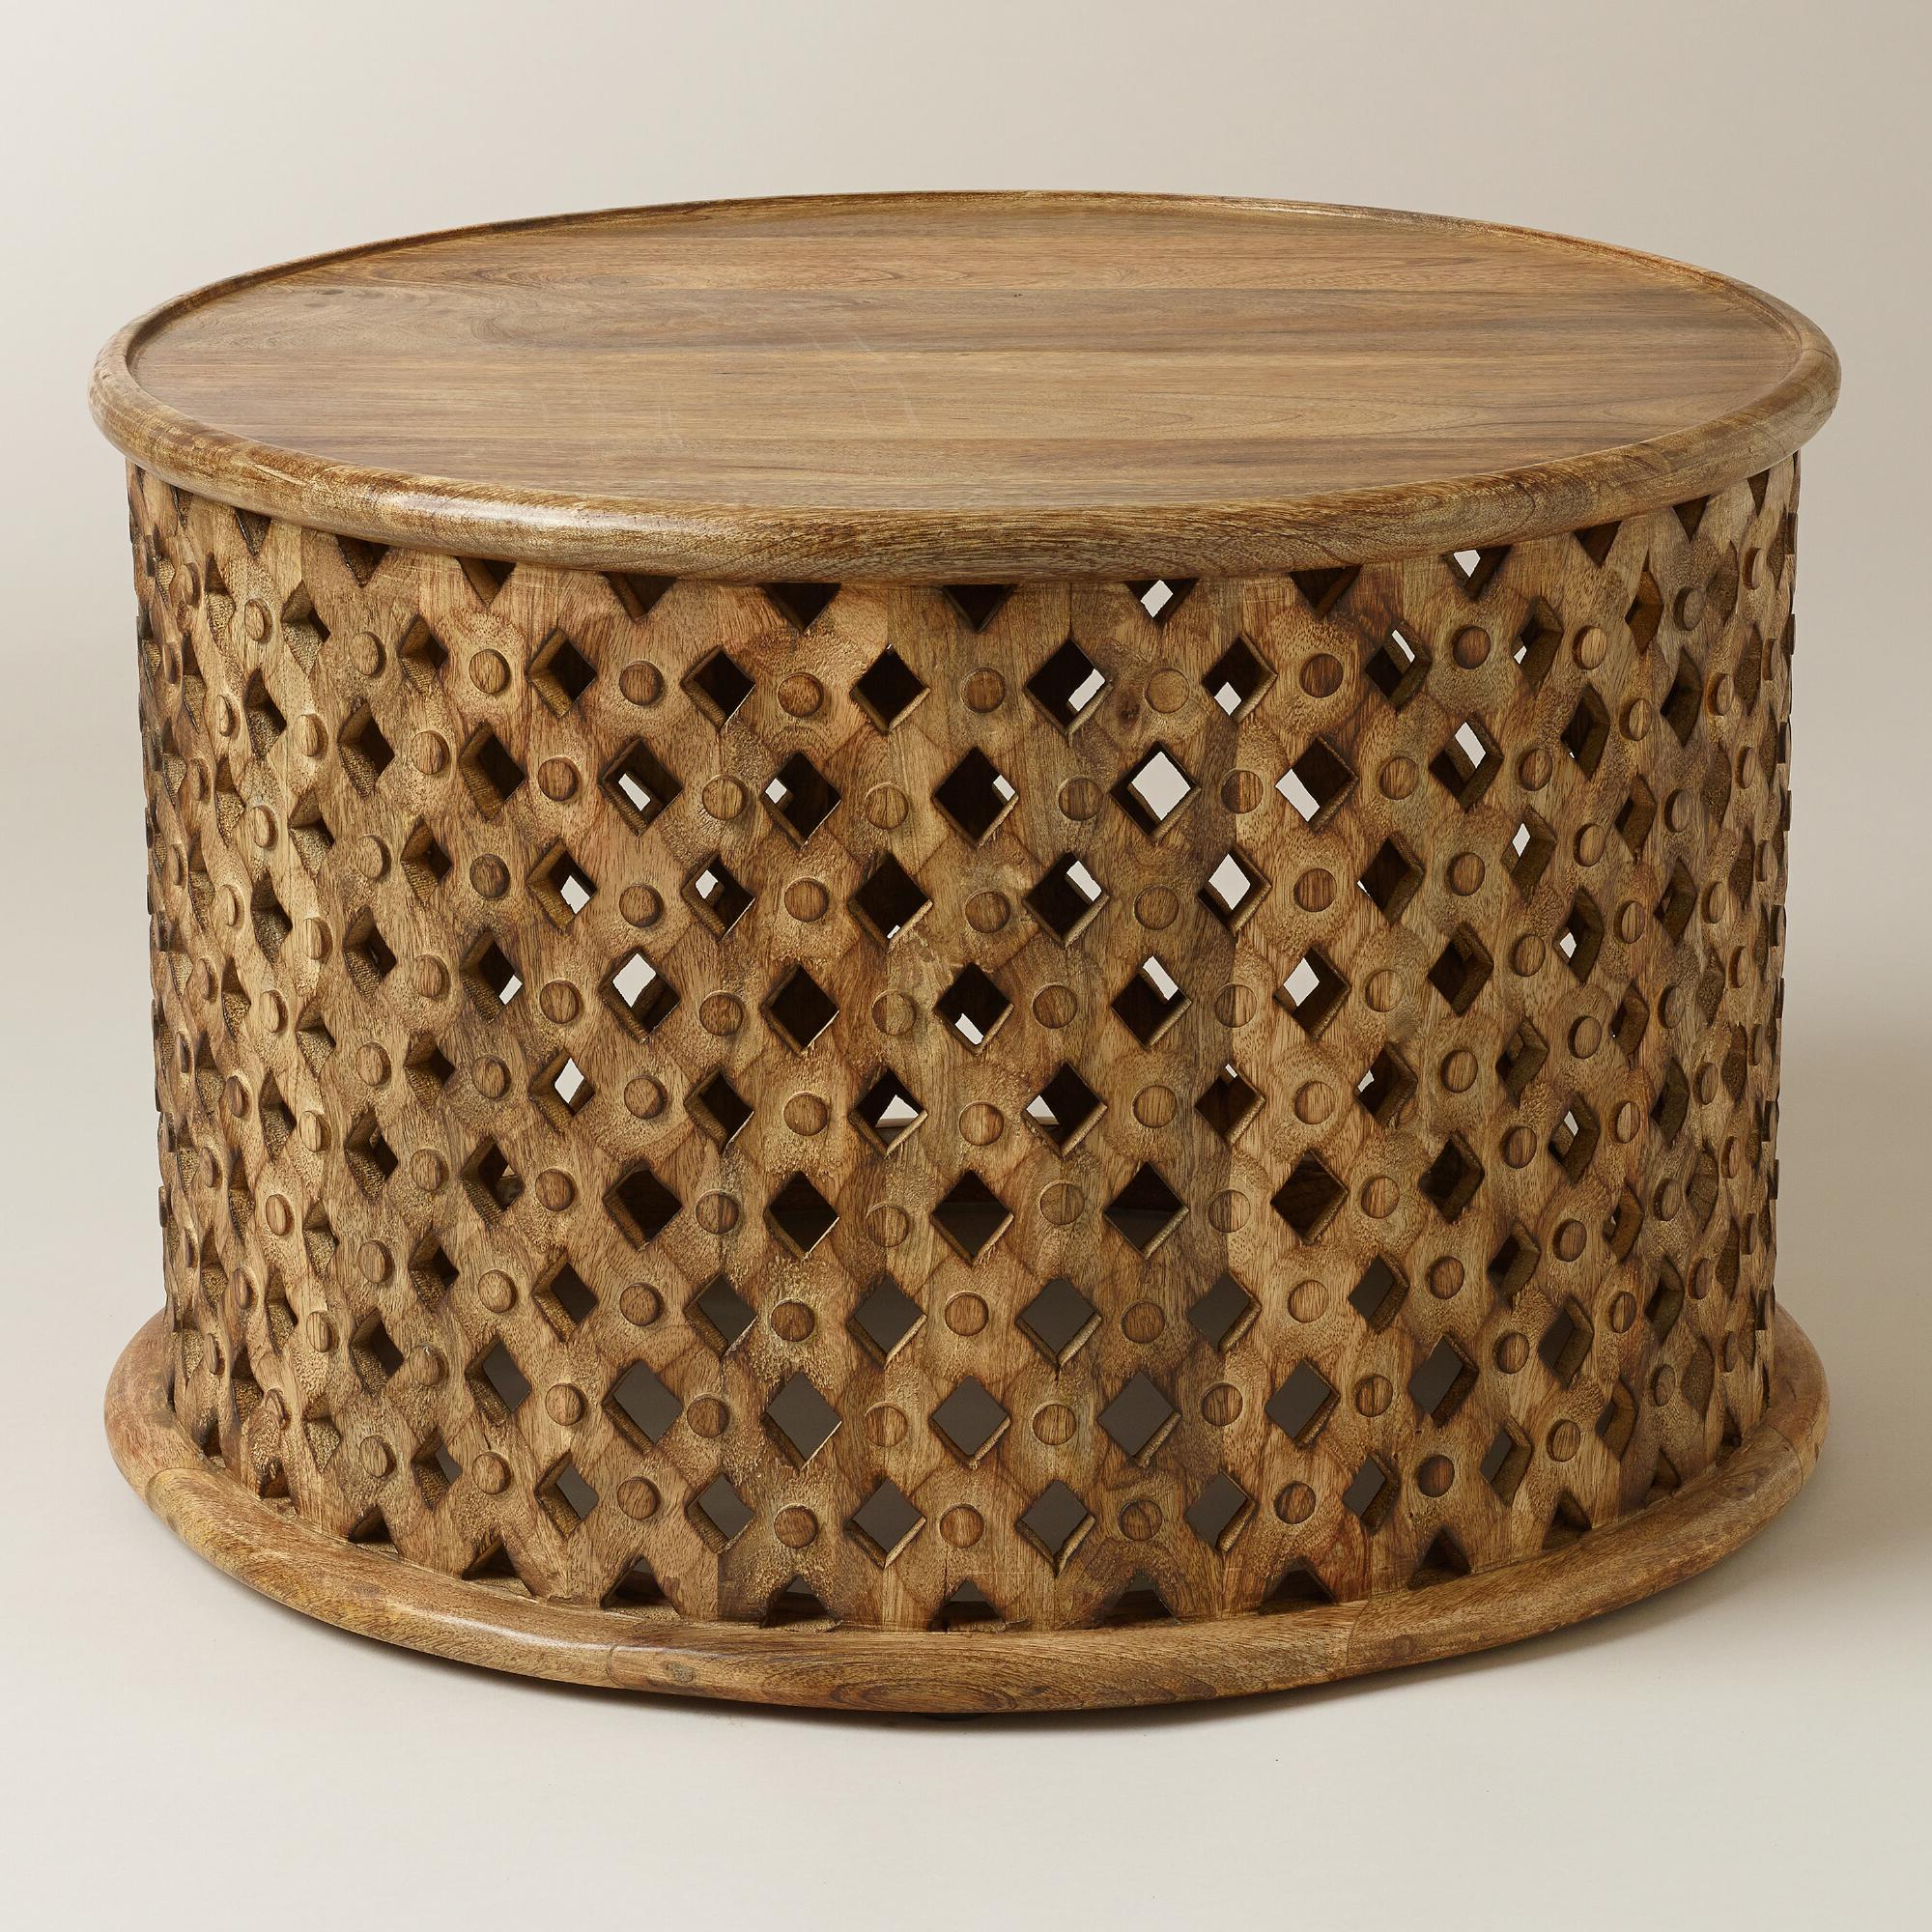 Preferred Round Carved Wood Coffee Table – Coffee Table Ideas Regarding Round Carved Wood Coffee Tables (View 15 of 20)